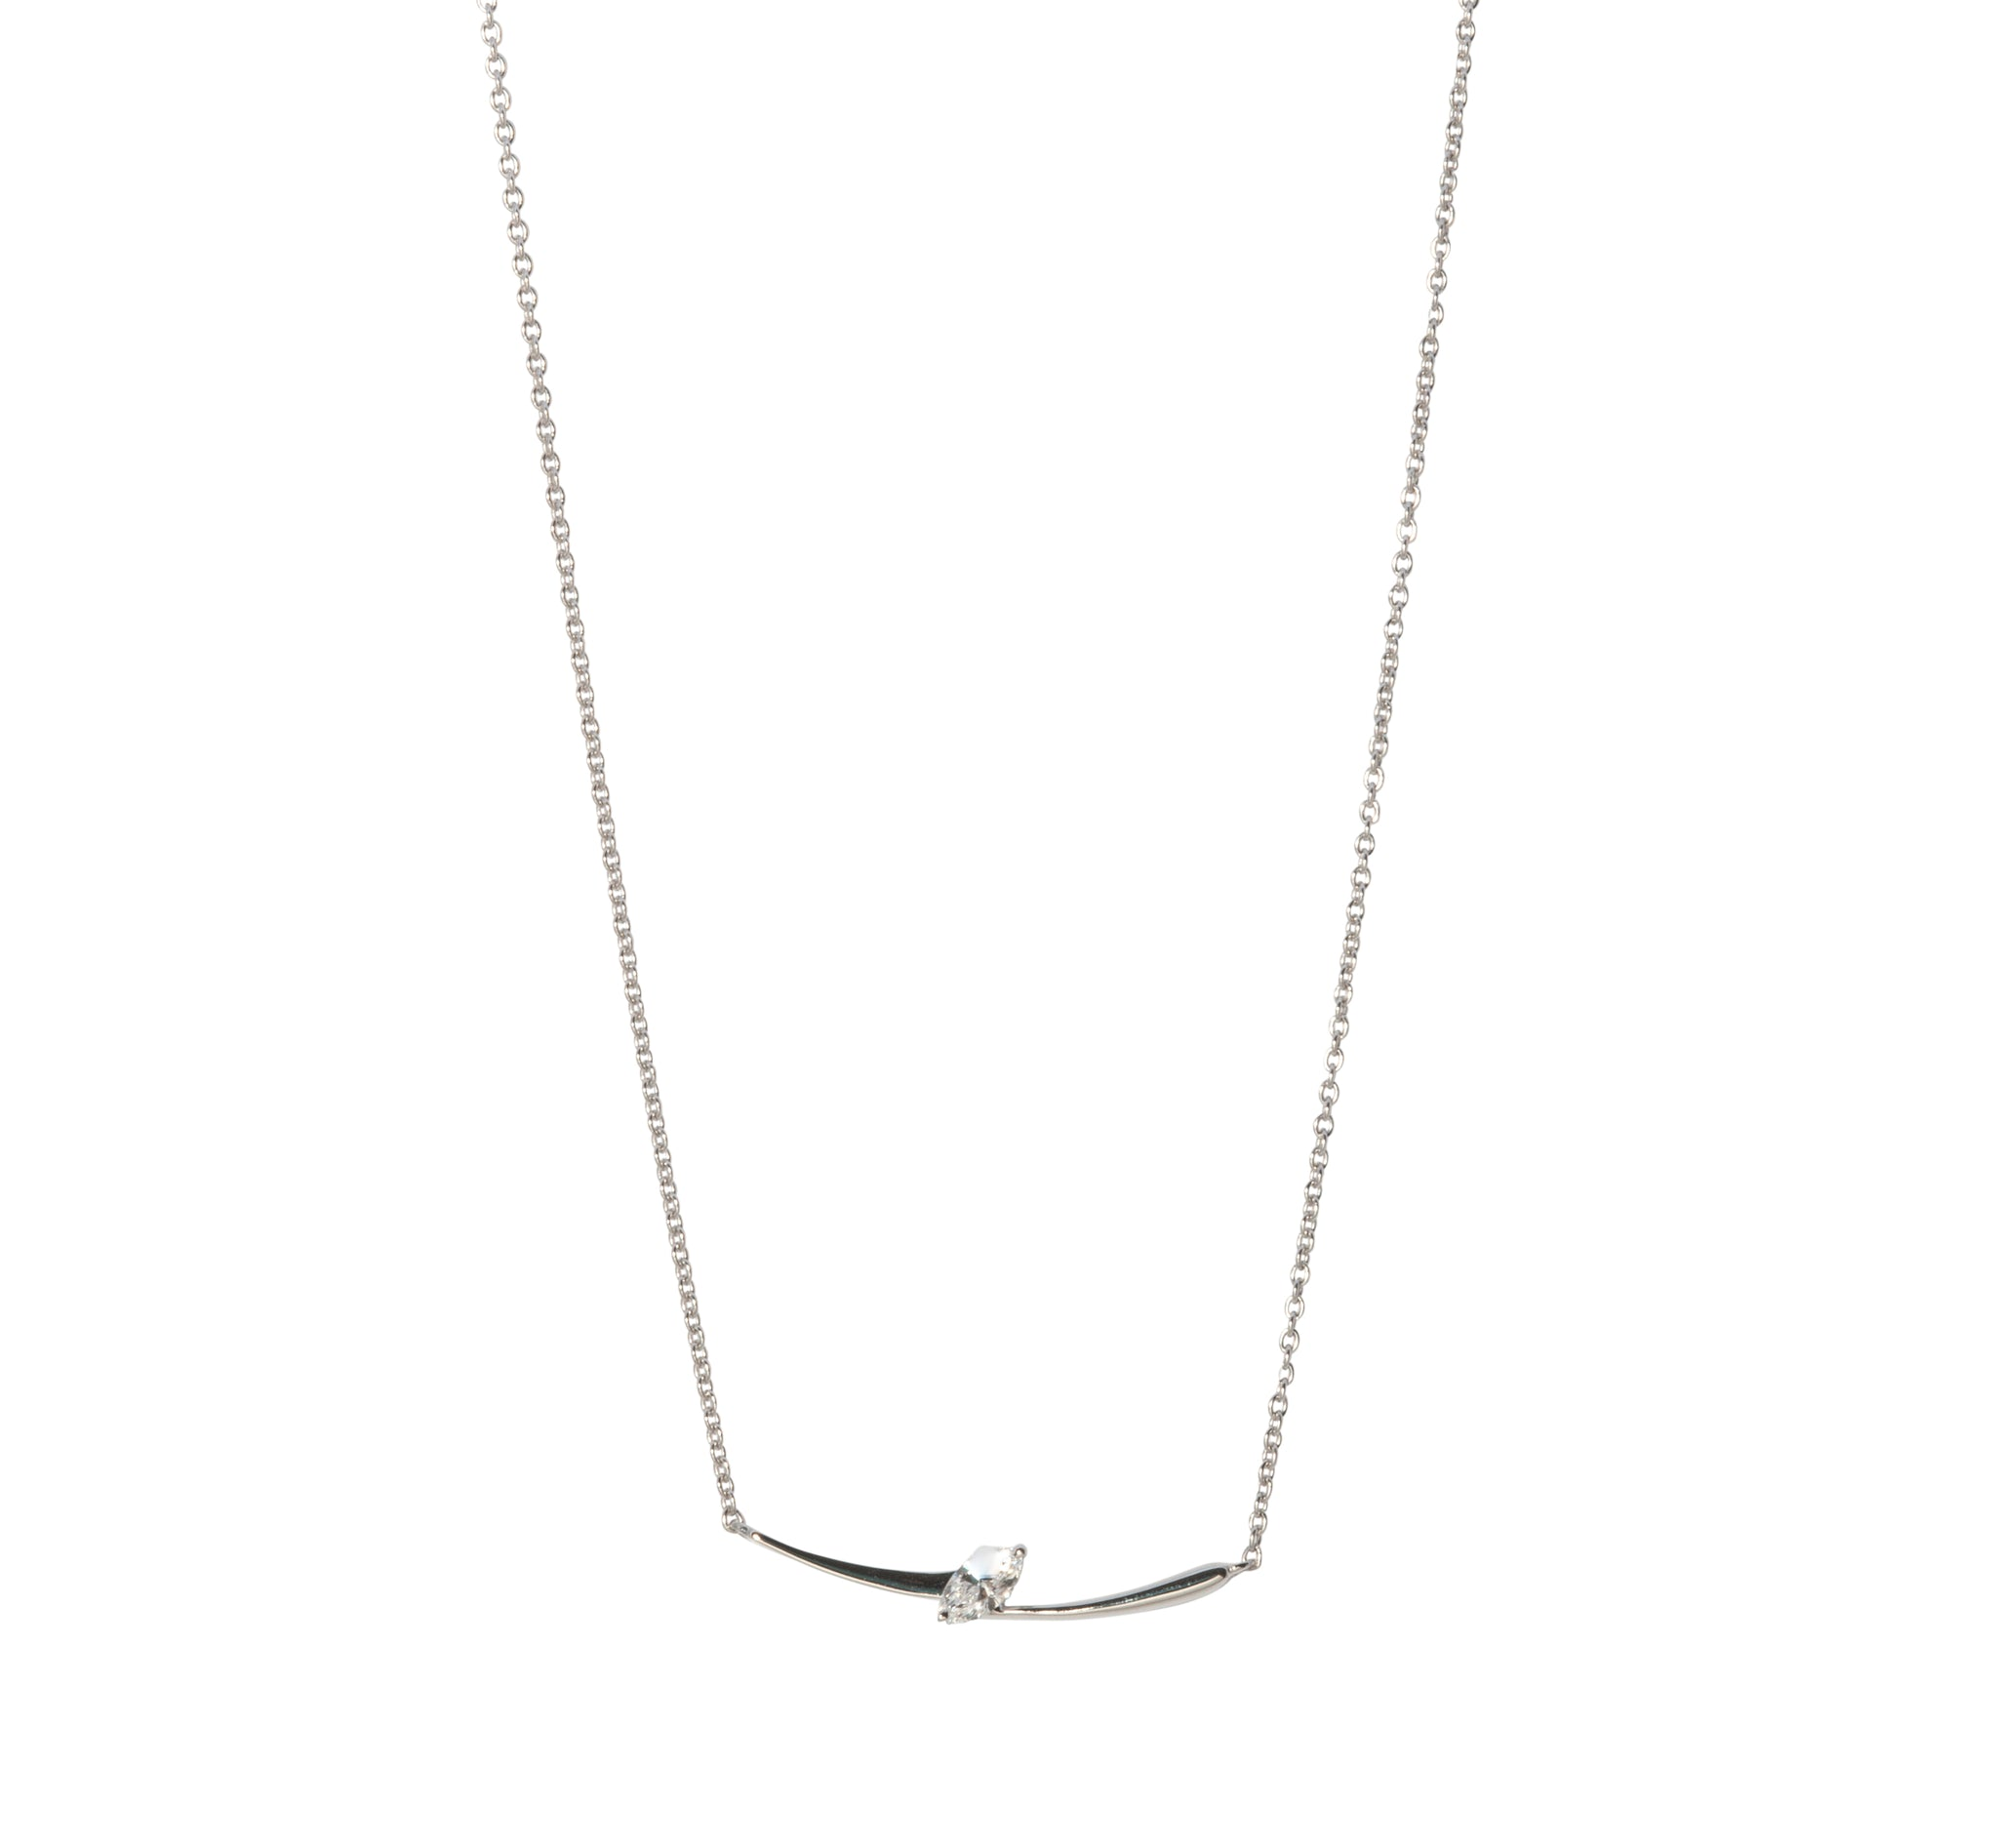 Marquise Diamond 14K Gold Curved Bar Necklace